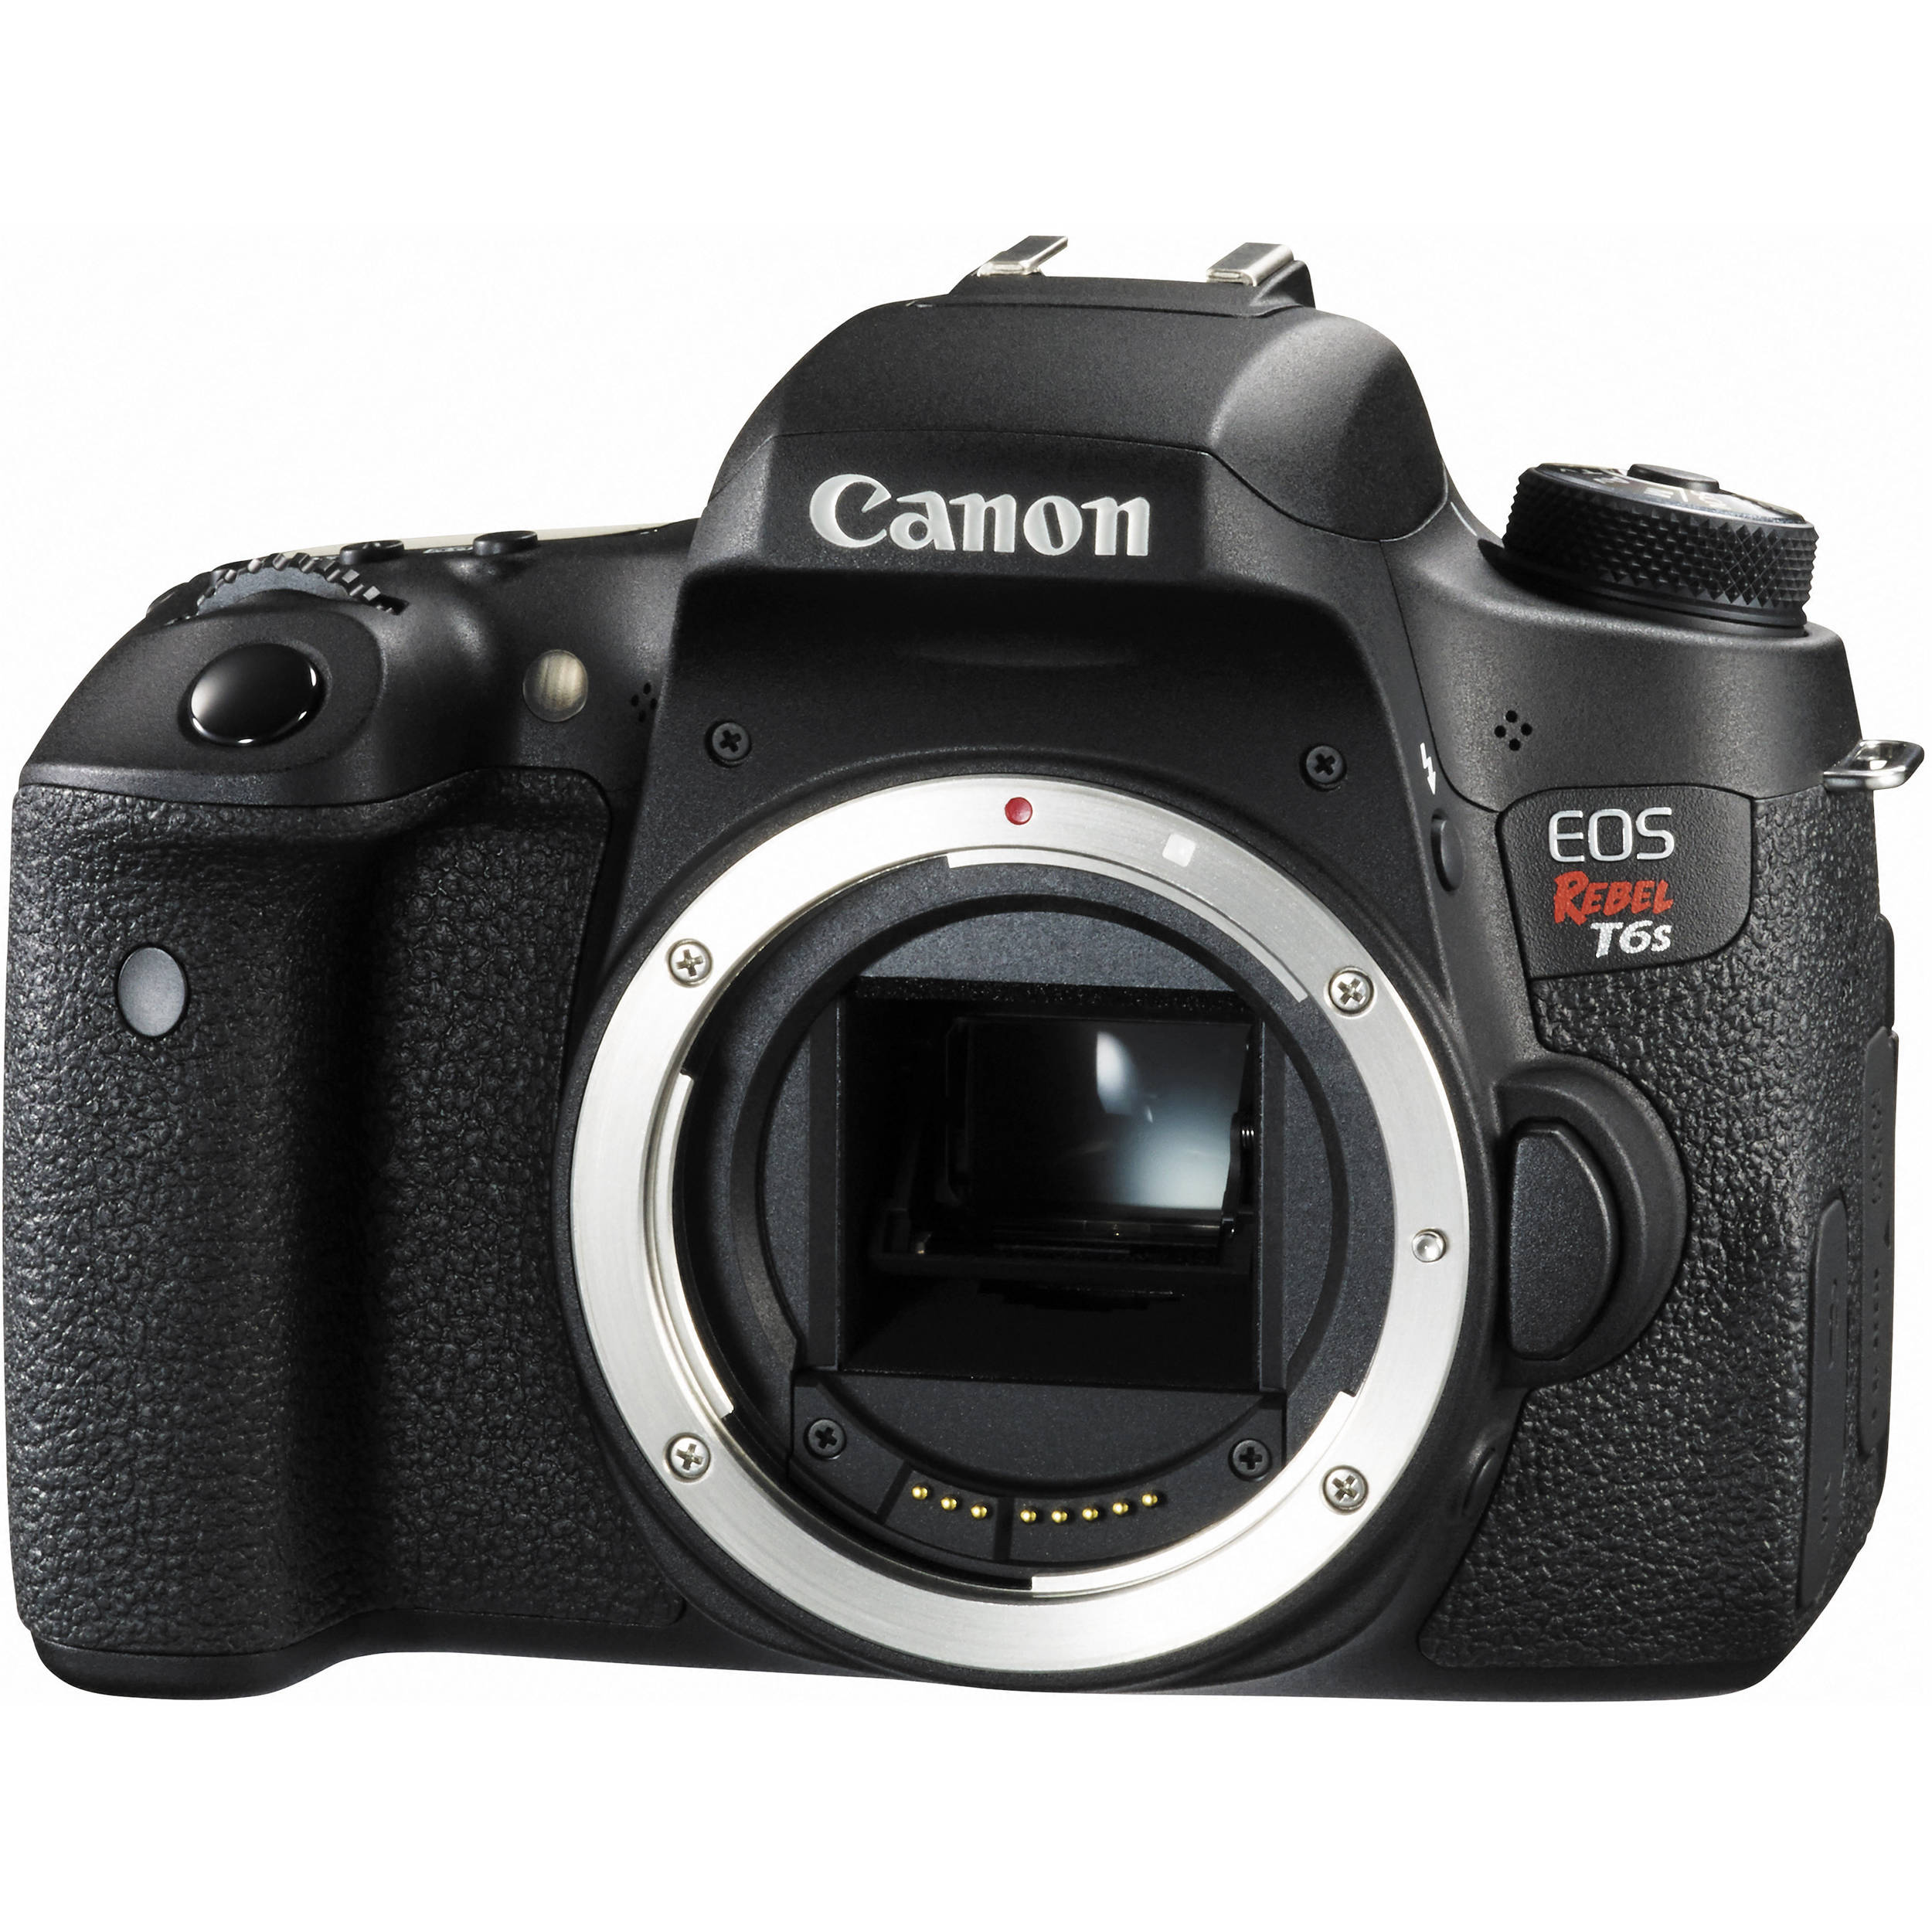 Camera Canon Dslr Camera Usa 9 recommended entry level dslr cameras bh explora canon eos rebel t6s camera